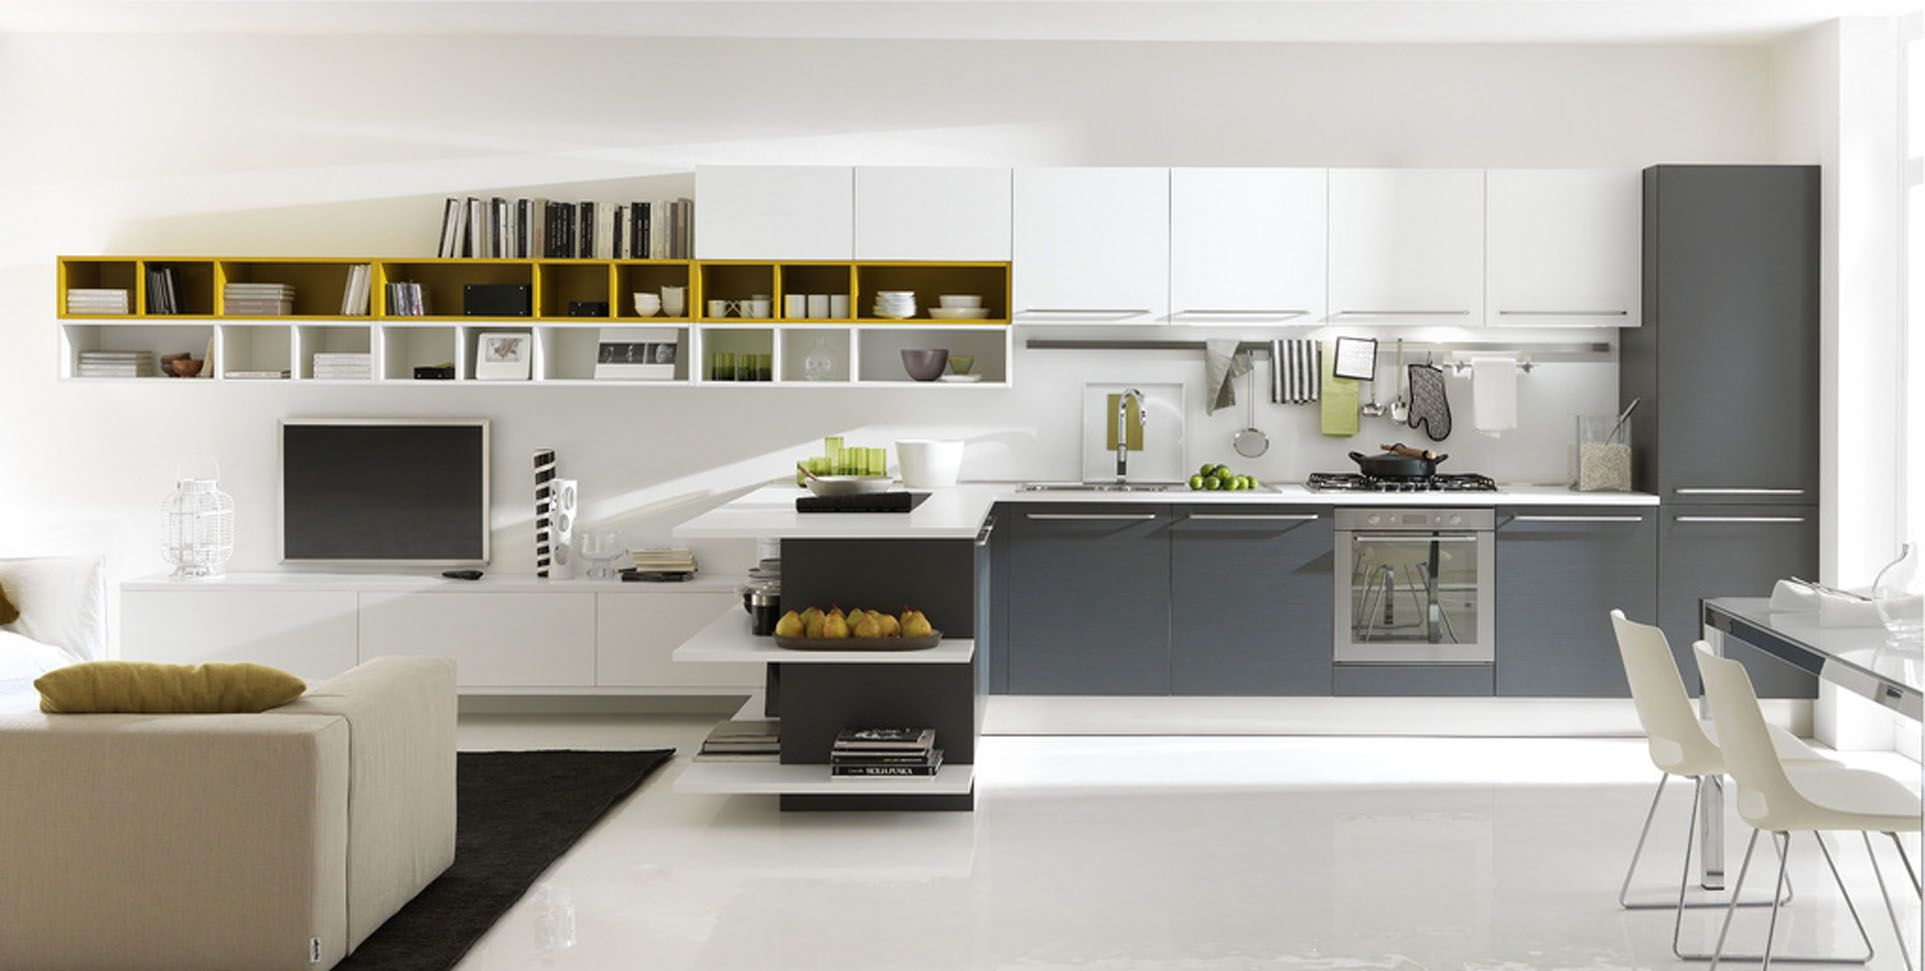 white kitchen design ideas beautiful kitchen design ideas ideas for ...